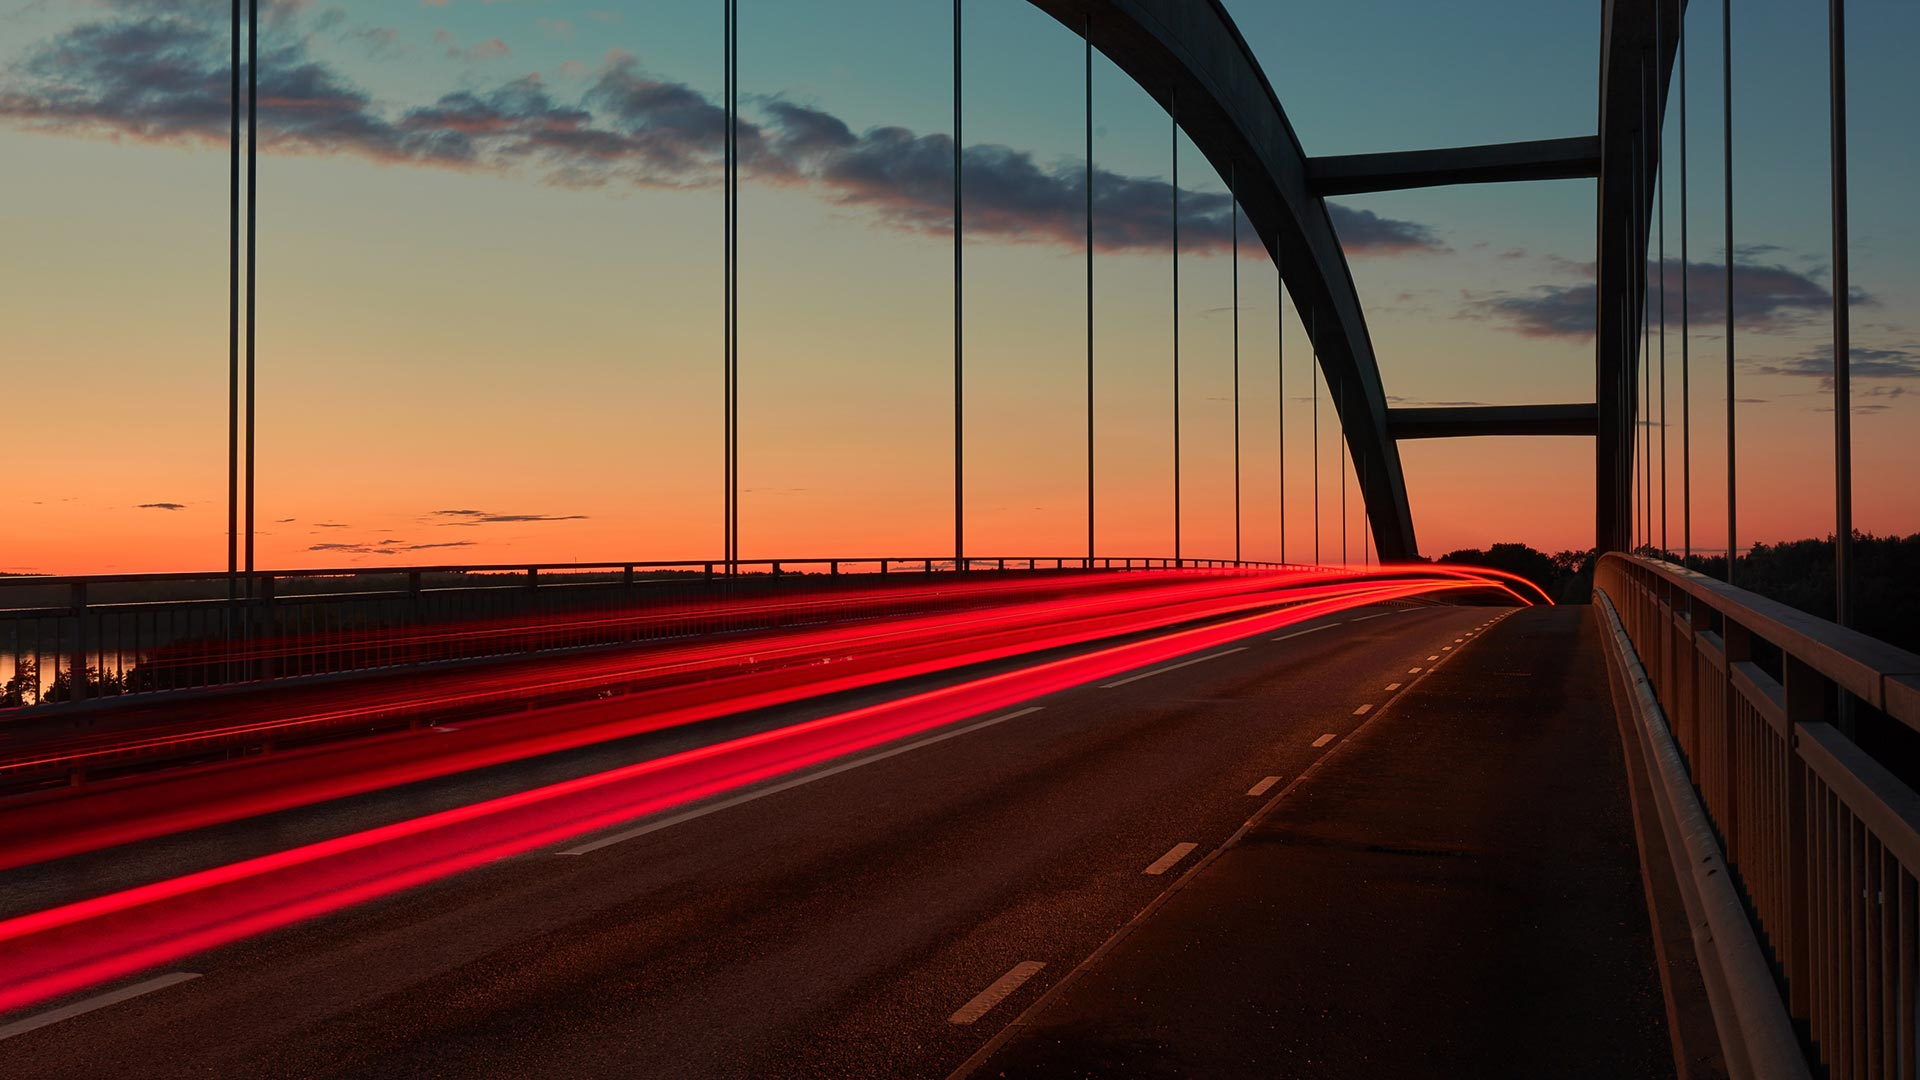 Extra Red bridges the gap between your applications through middleware